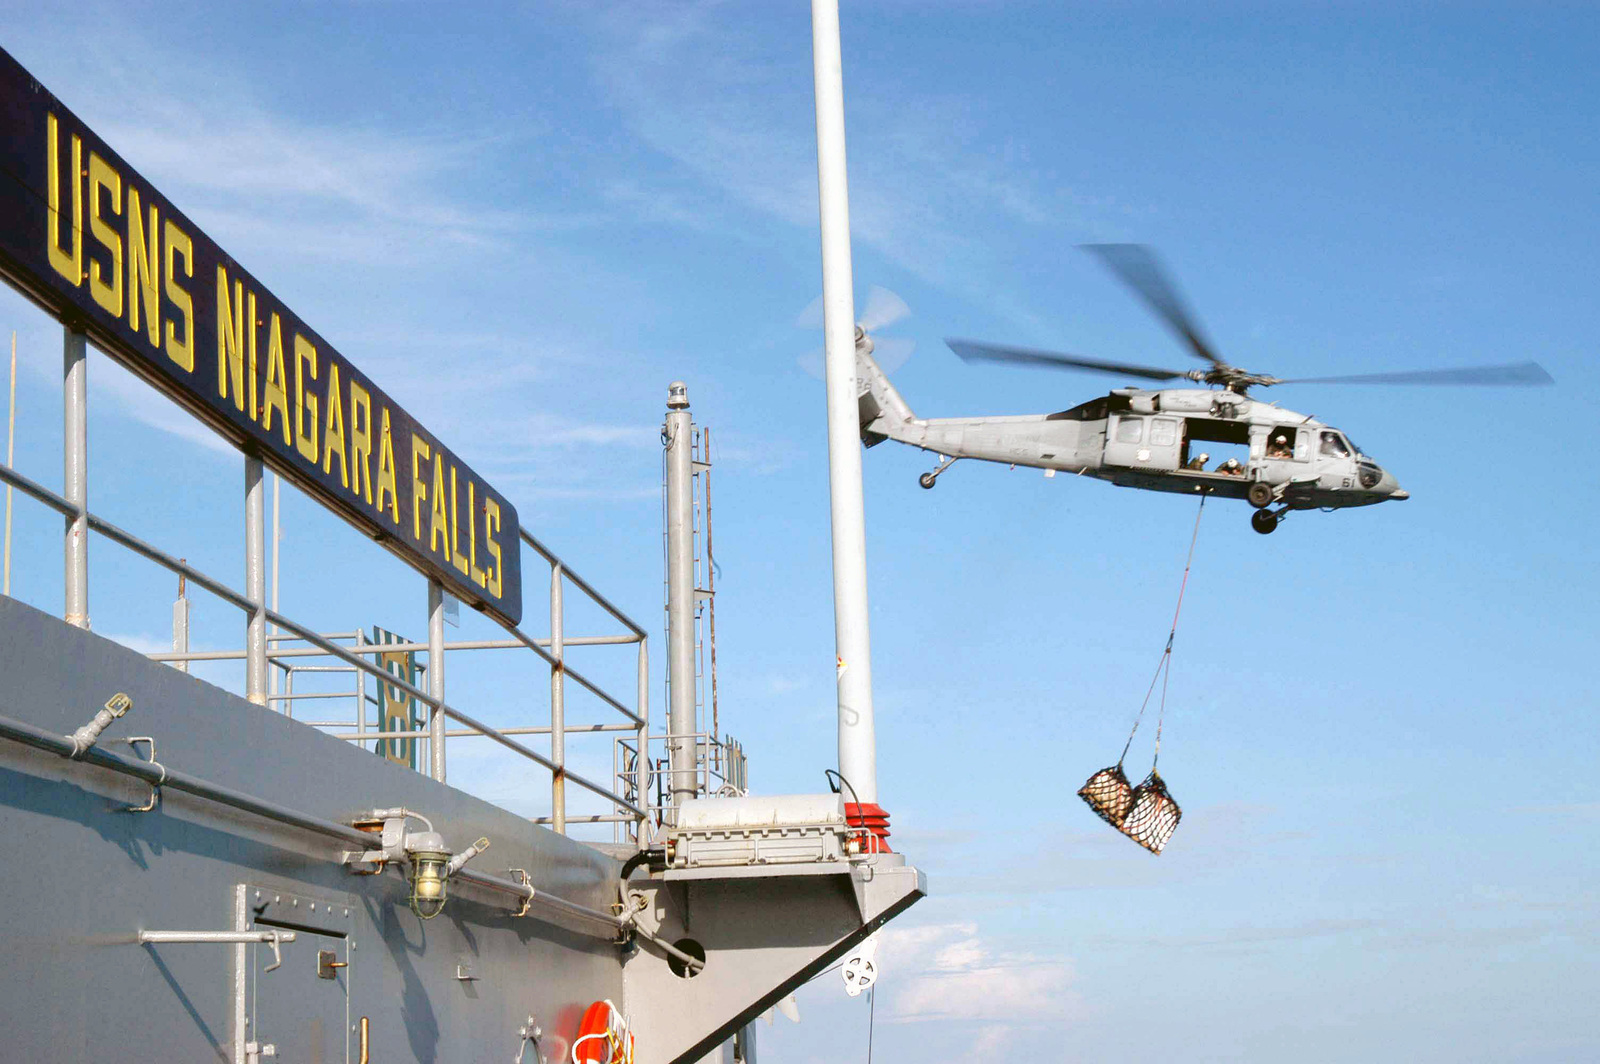 A US Navy (USN) MH-60S Knighthawk helicopter assigned to the Providers of Helicopter Combat Support Squadron (HC-5), Detachment 3, transfers stores from the Military Sealift Command (MSC) Combat Stores Ship (TAFS) USNS NIAGRA FALLS (T-AFS 3) during an at sea Vertical Replenishment (VERTREP).  This ship is currently operating in the Indian Ocean off the waters of Indonesia and Thailand in support of Operation Unified Assistance, for Tsunami victims